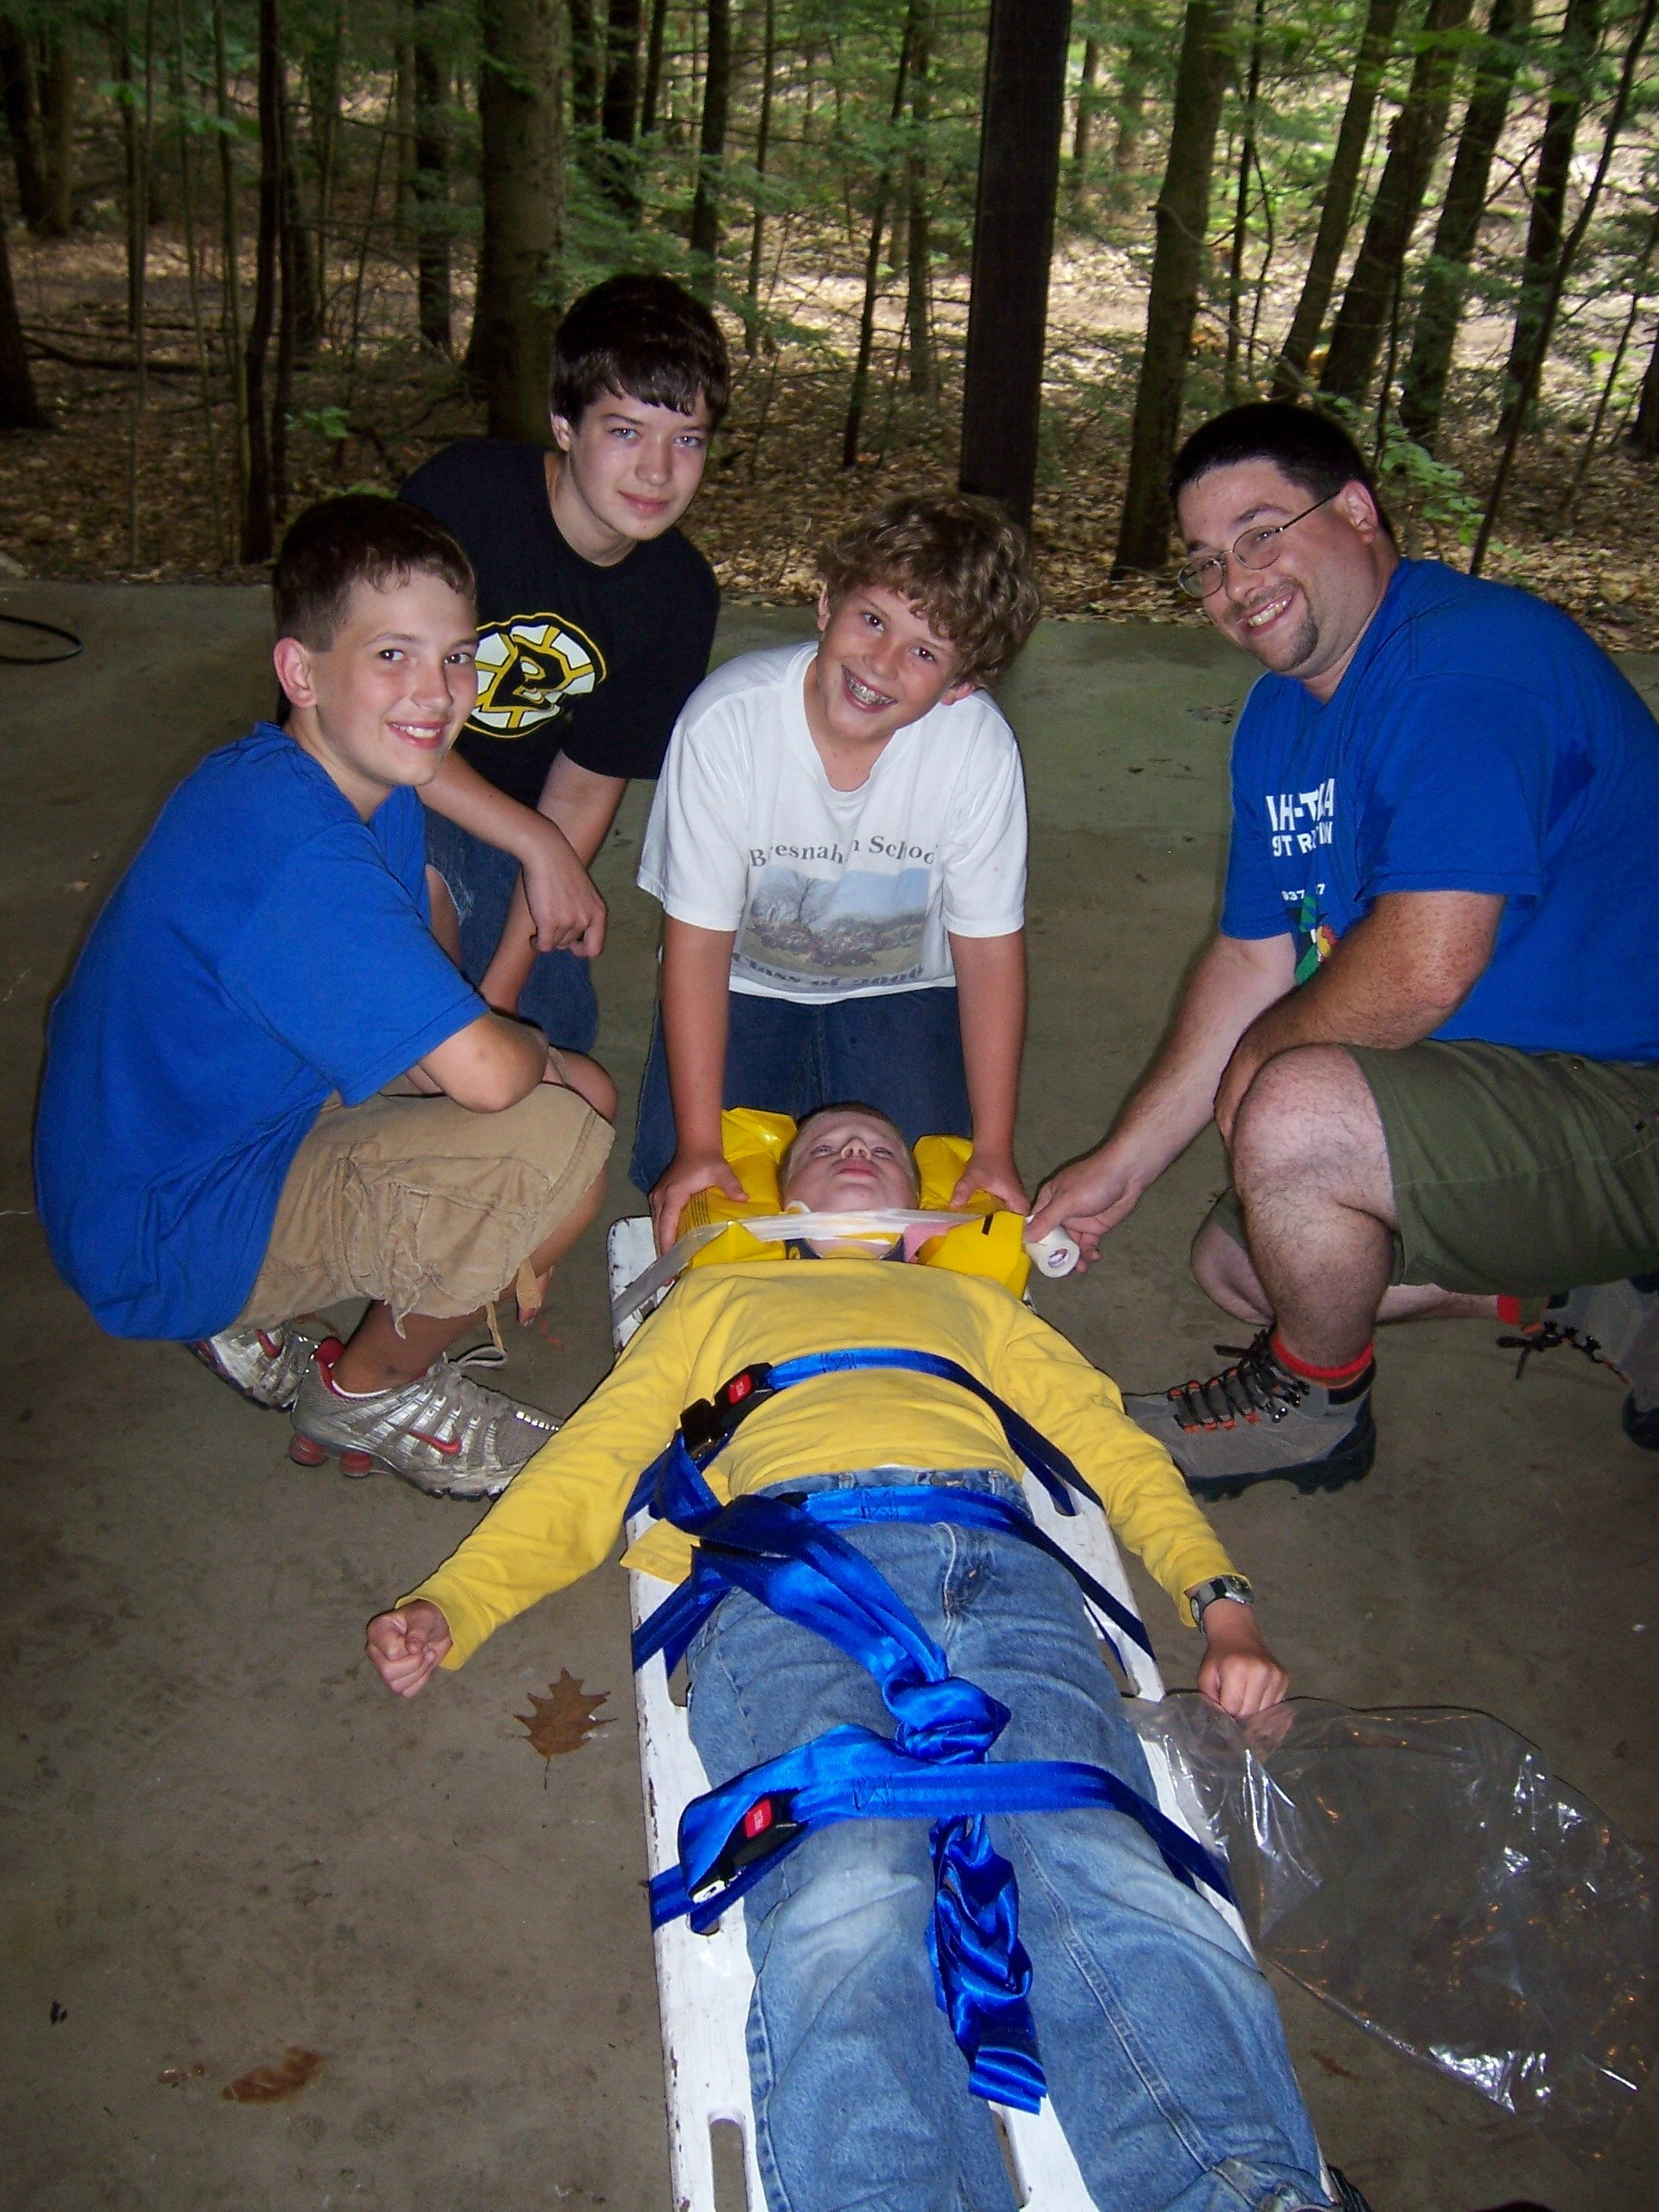 Summer camp first aid